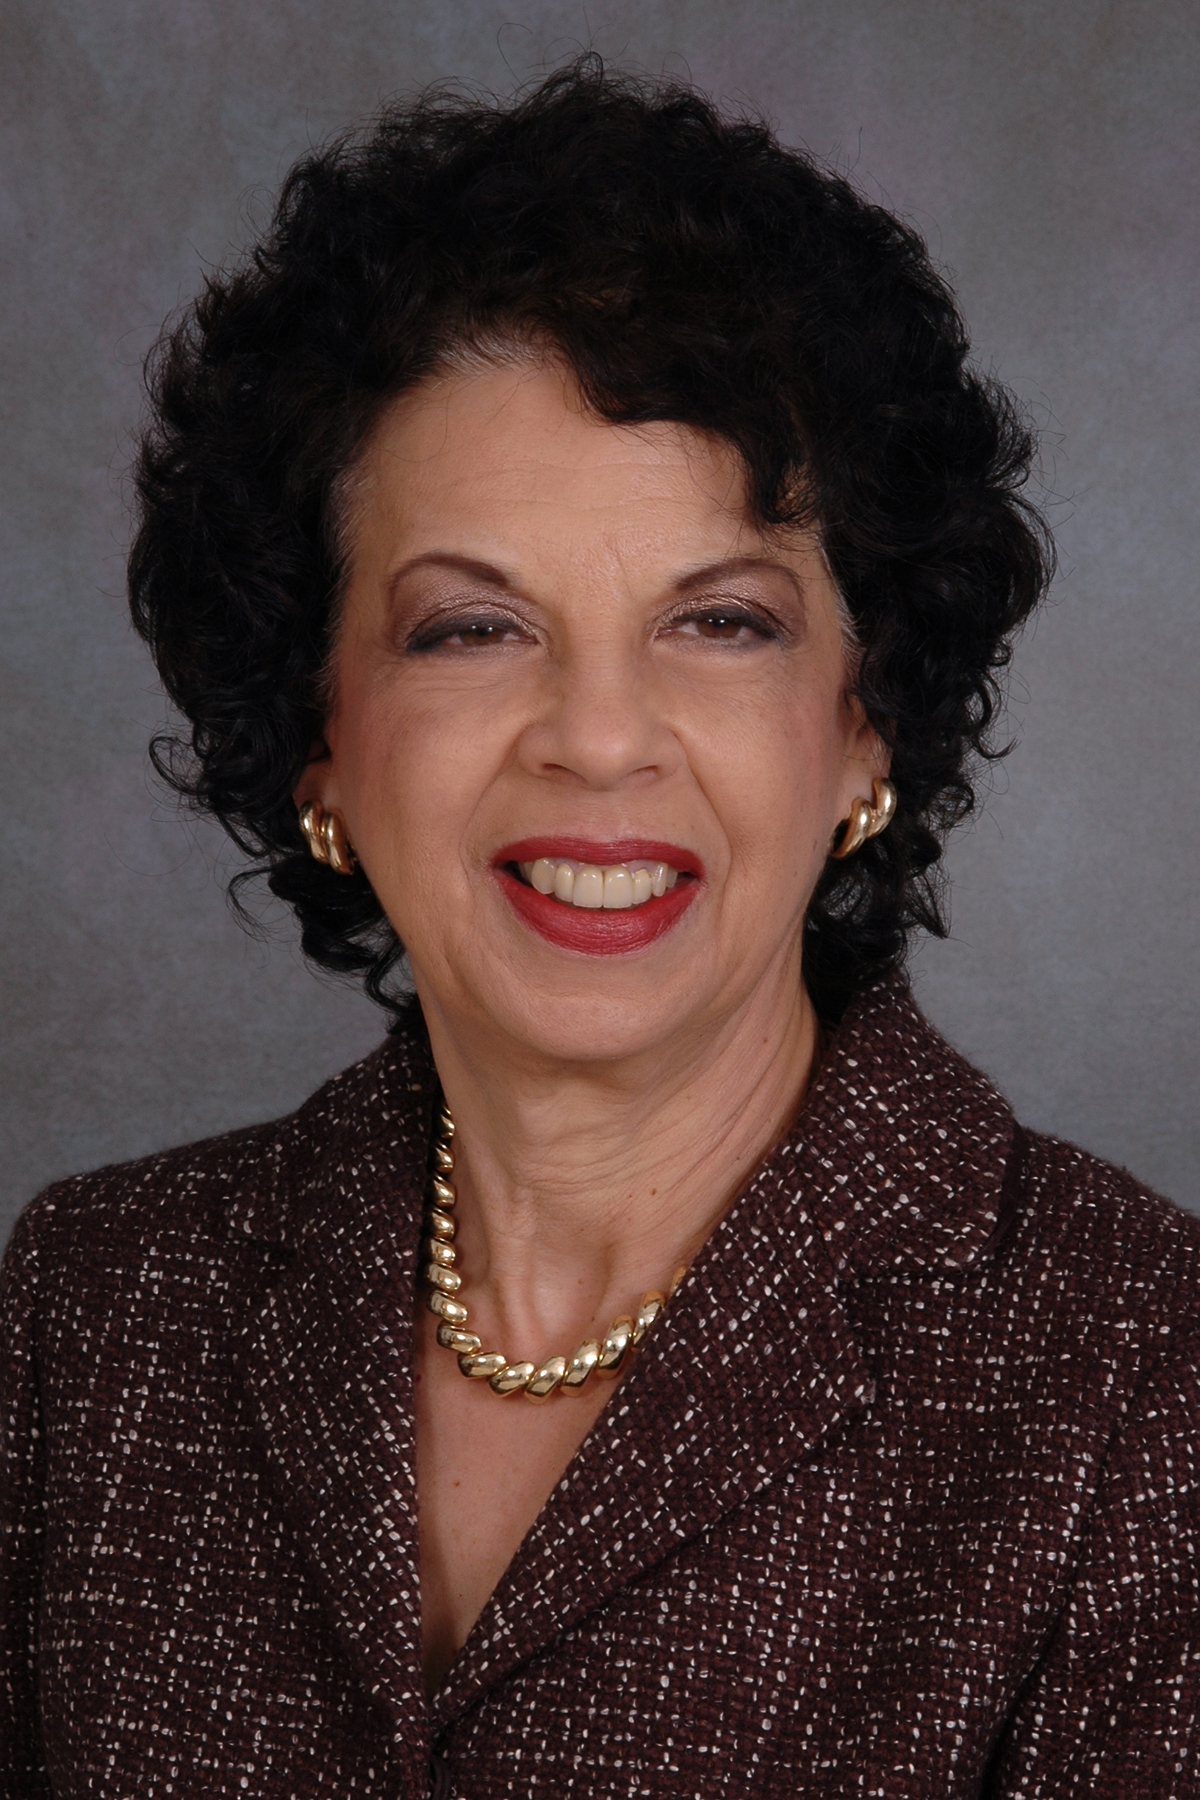 Gloria snyder photo